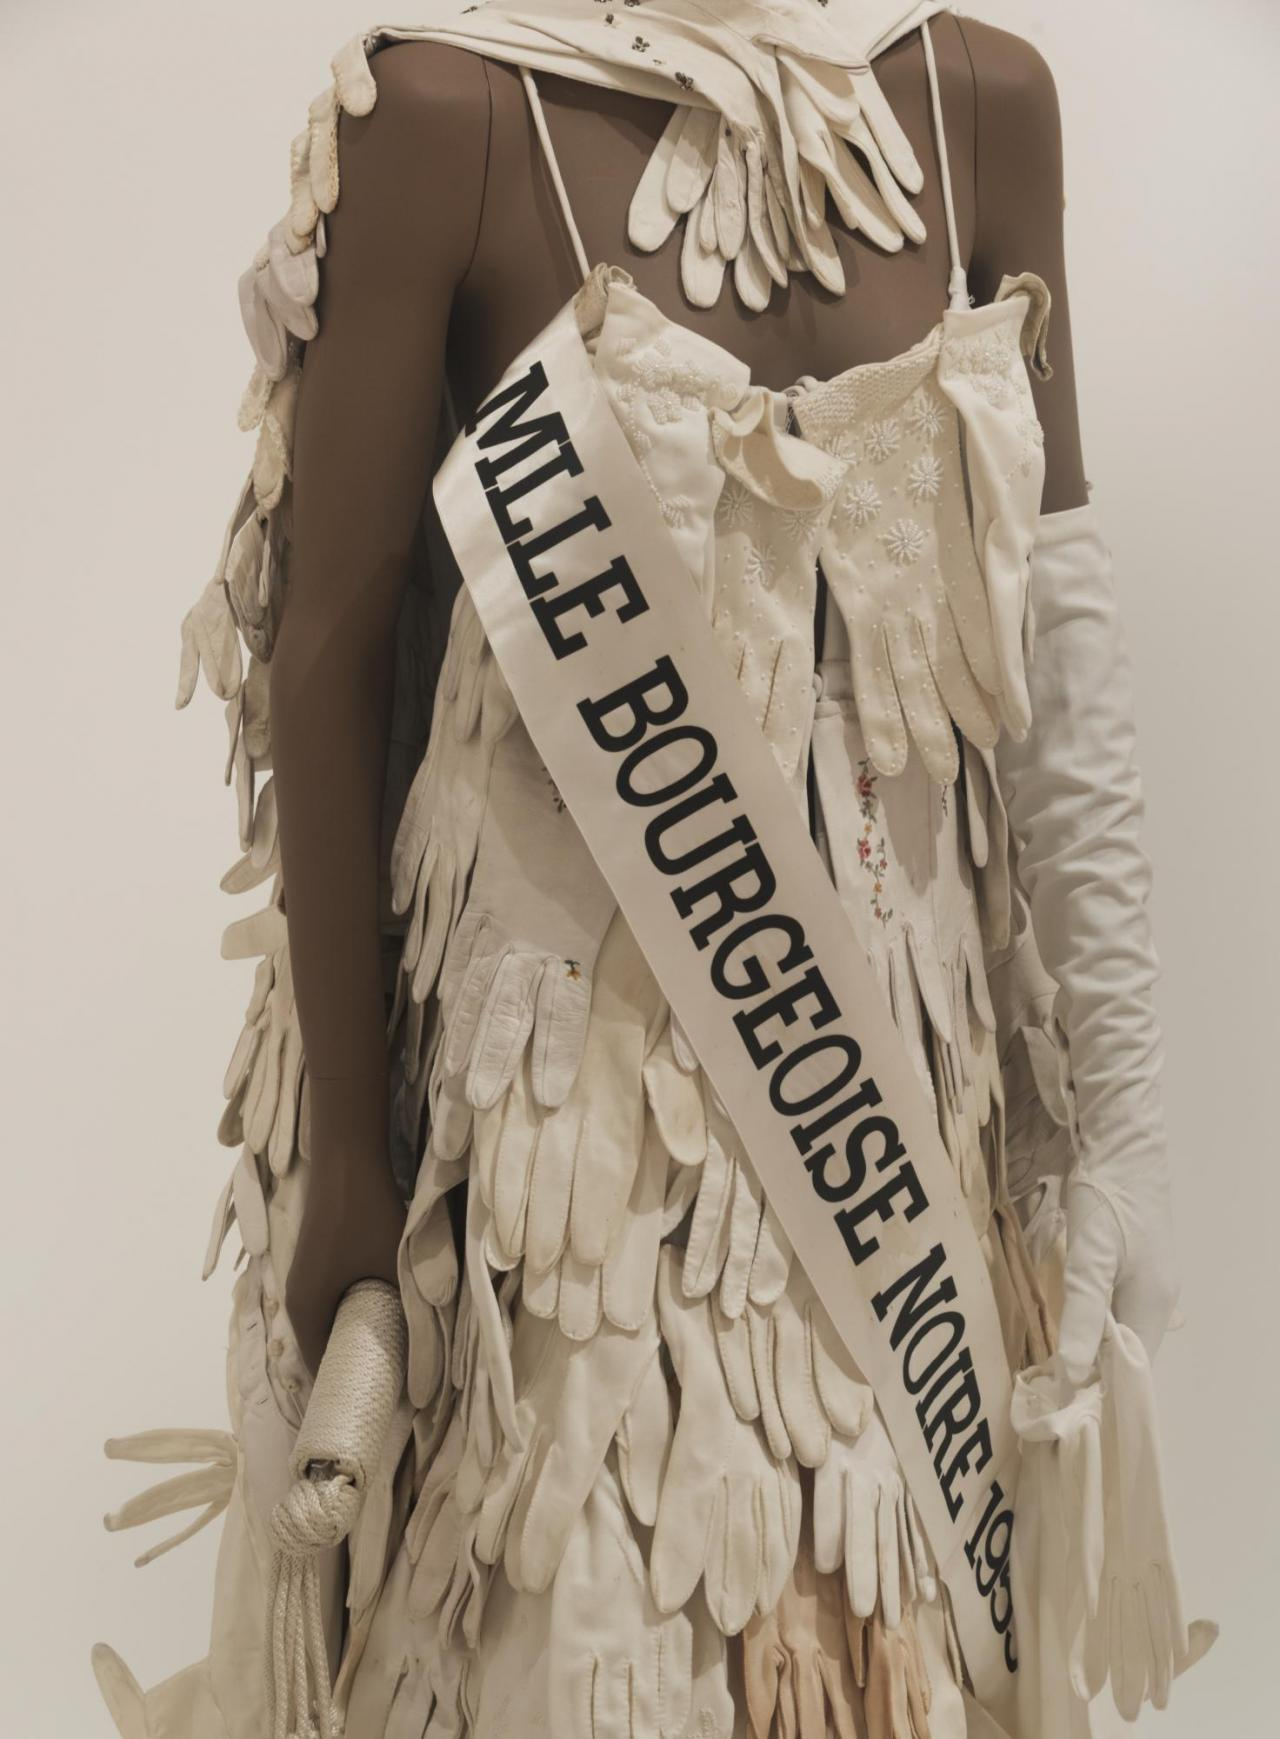 Lorraine O'Grady, Mlle Bourgeoise Noire Costume , 1980, Costume made from white gloves, shoes, tiara, sash, pair of gloves, 176× 55× 71cm,